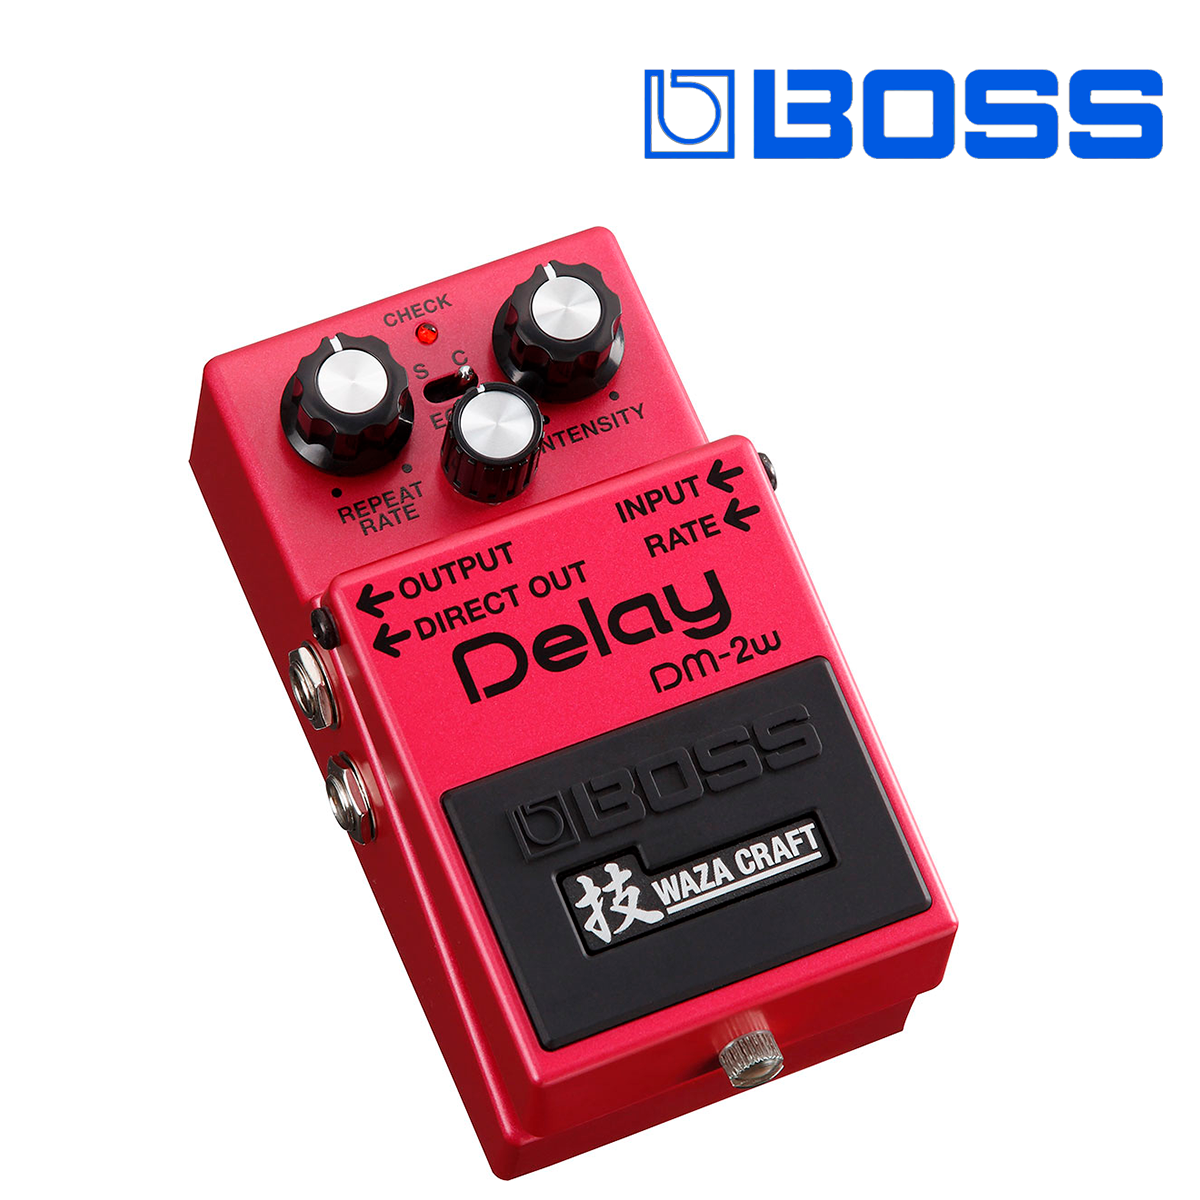 PEDAL COMPACTO DELAY WAZA CRAFT DM-2W